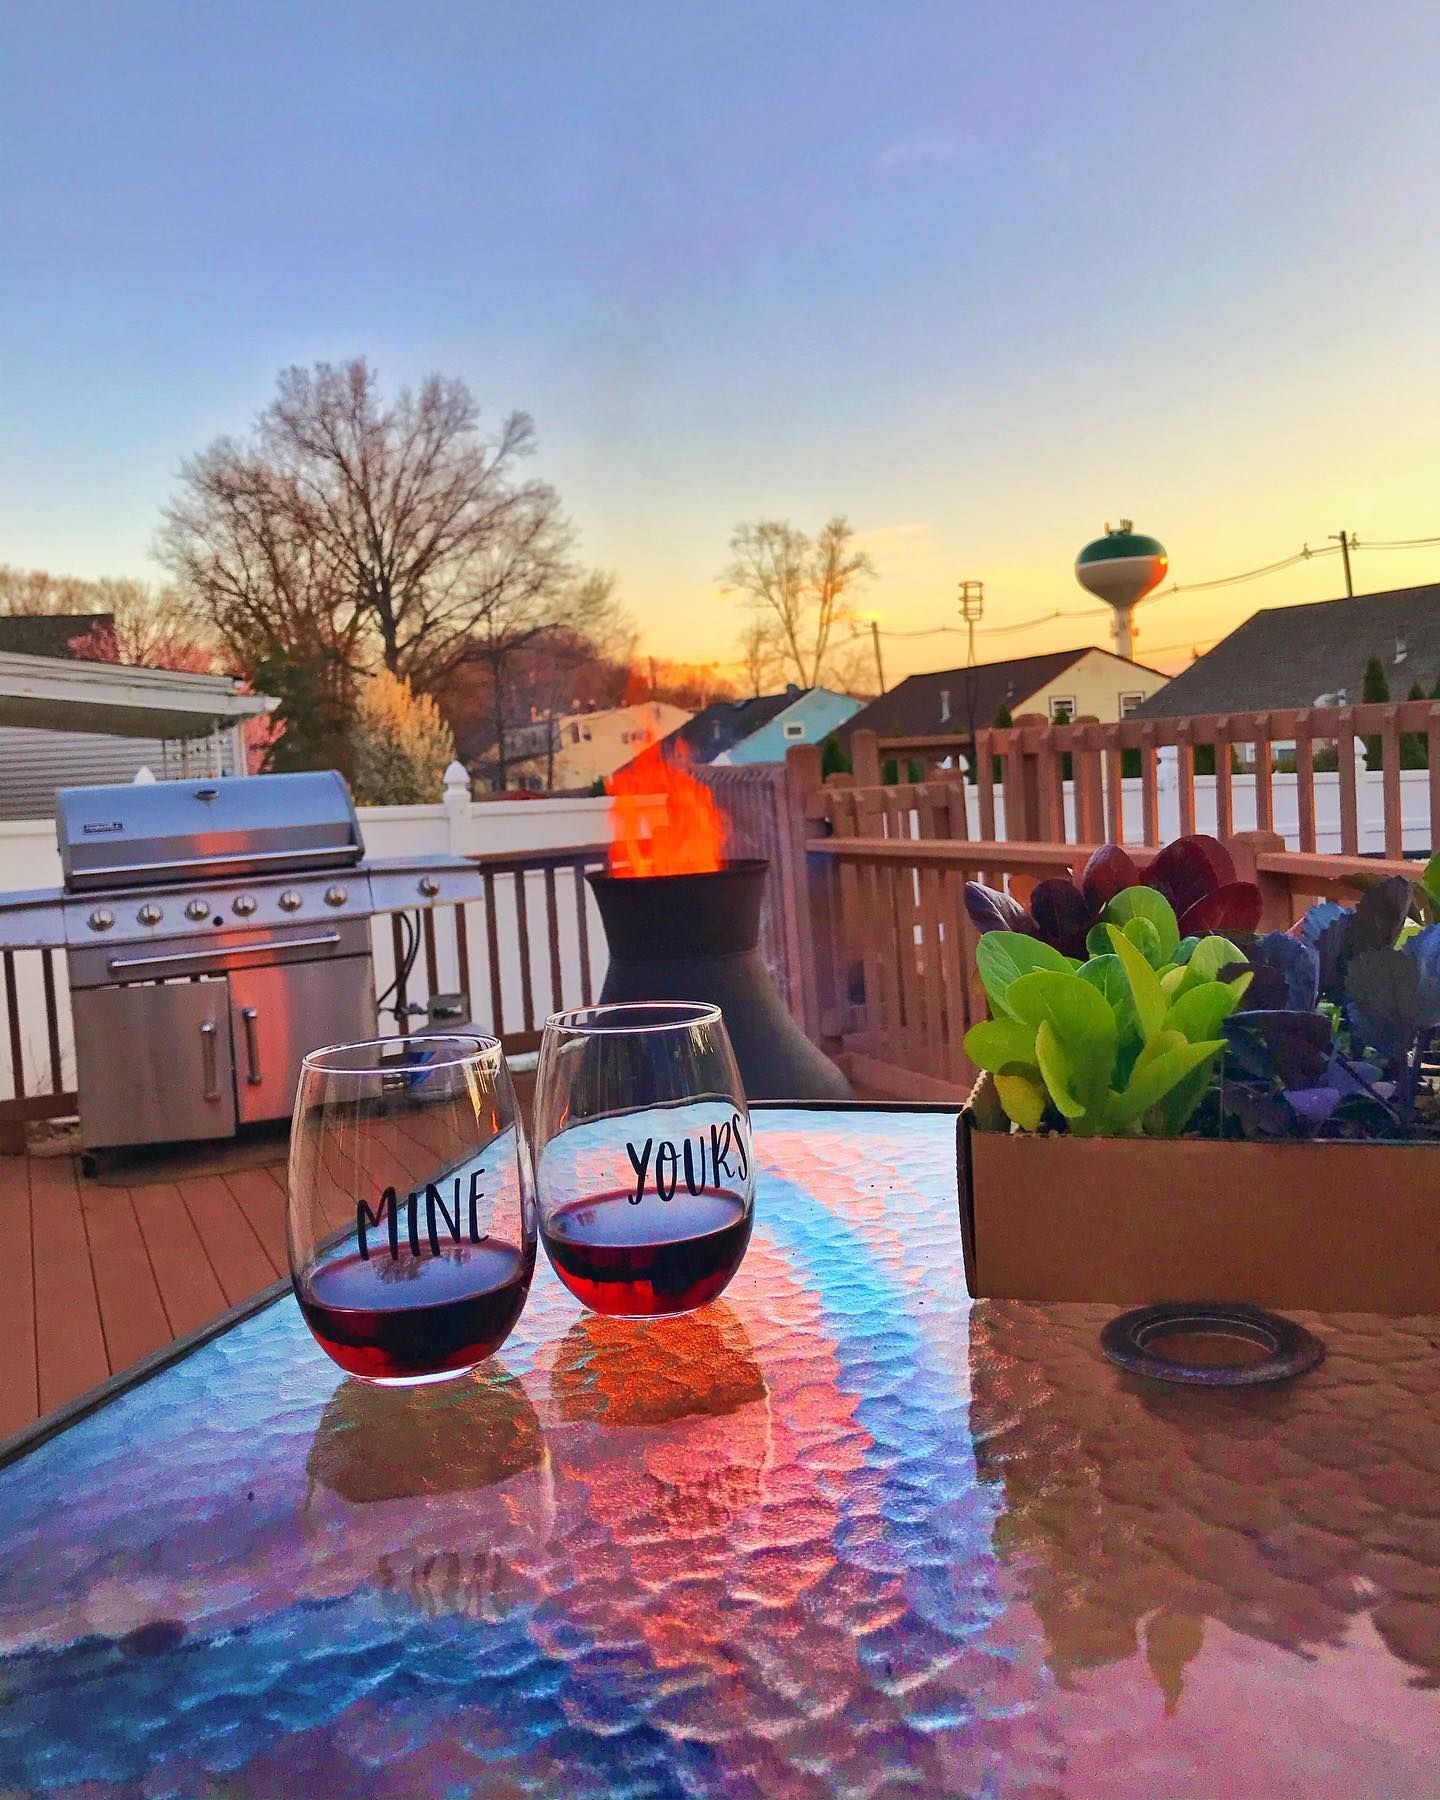 Cheers To Another Awesome Weekend In Isolation Swipe For The Before Edit This Is The First Time Using The Chiminea In 2020 Fashion Instagram Accounts Chiminea Yard